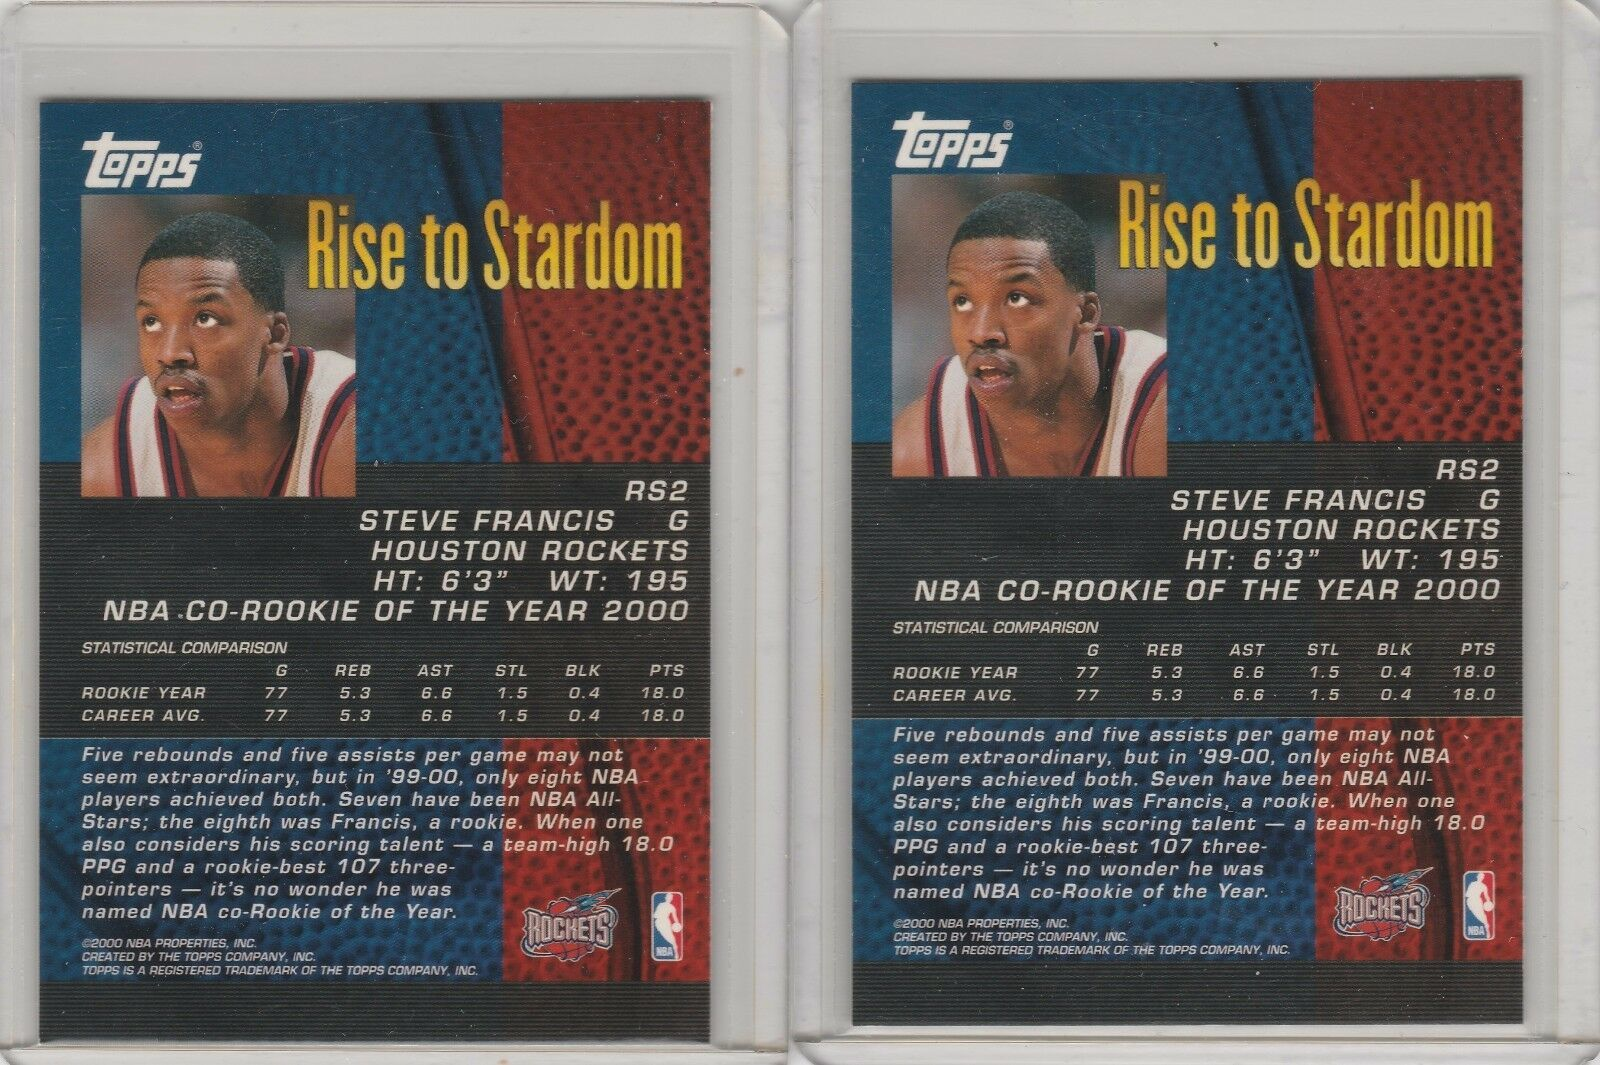 2000-01 Topps - Rise to Stardom #RS2 Steve Francis Lot of 2